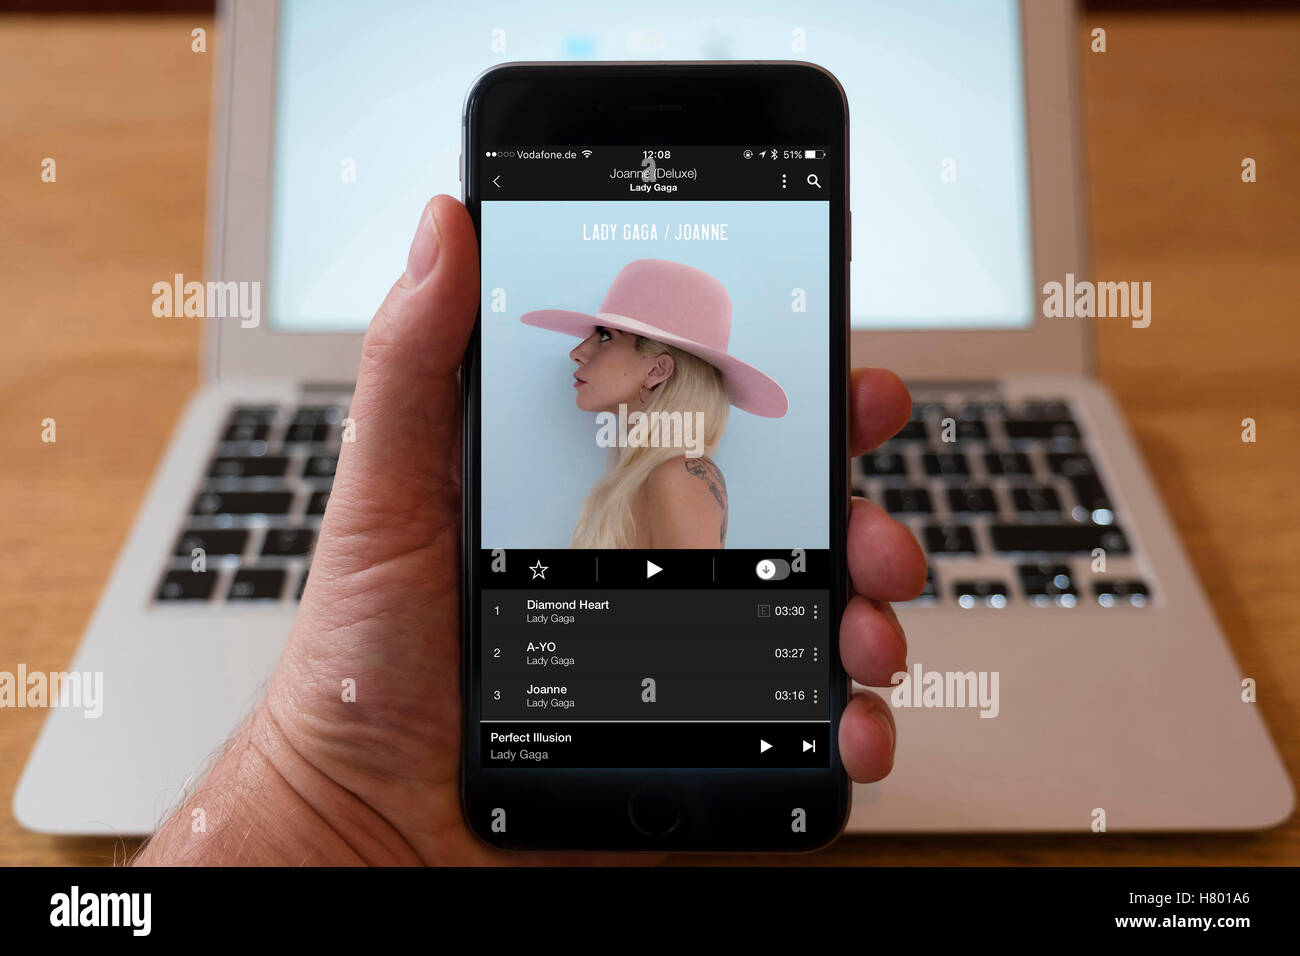 Music Streaming Service Stock Photos & Music Streaming